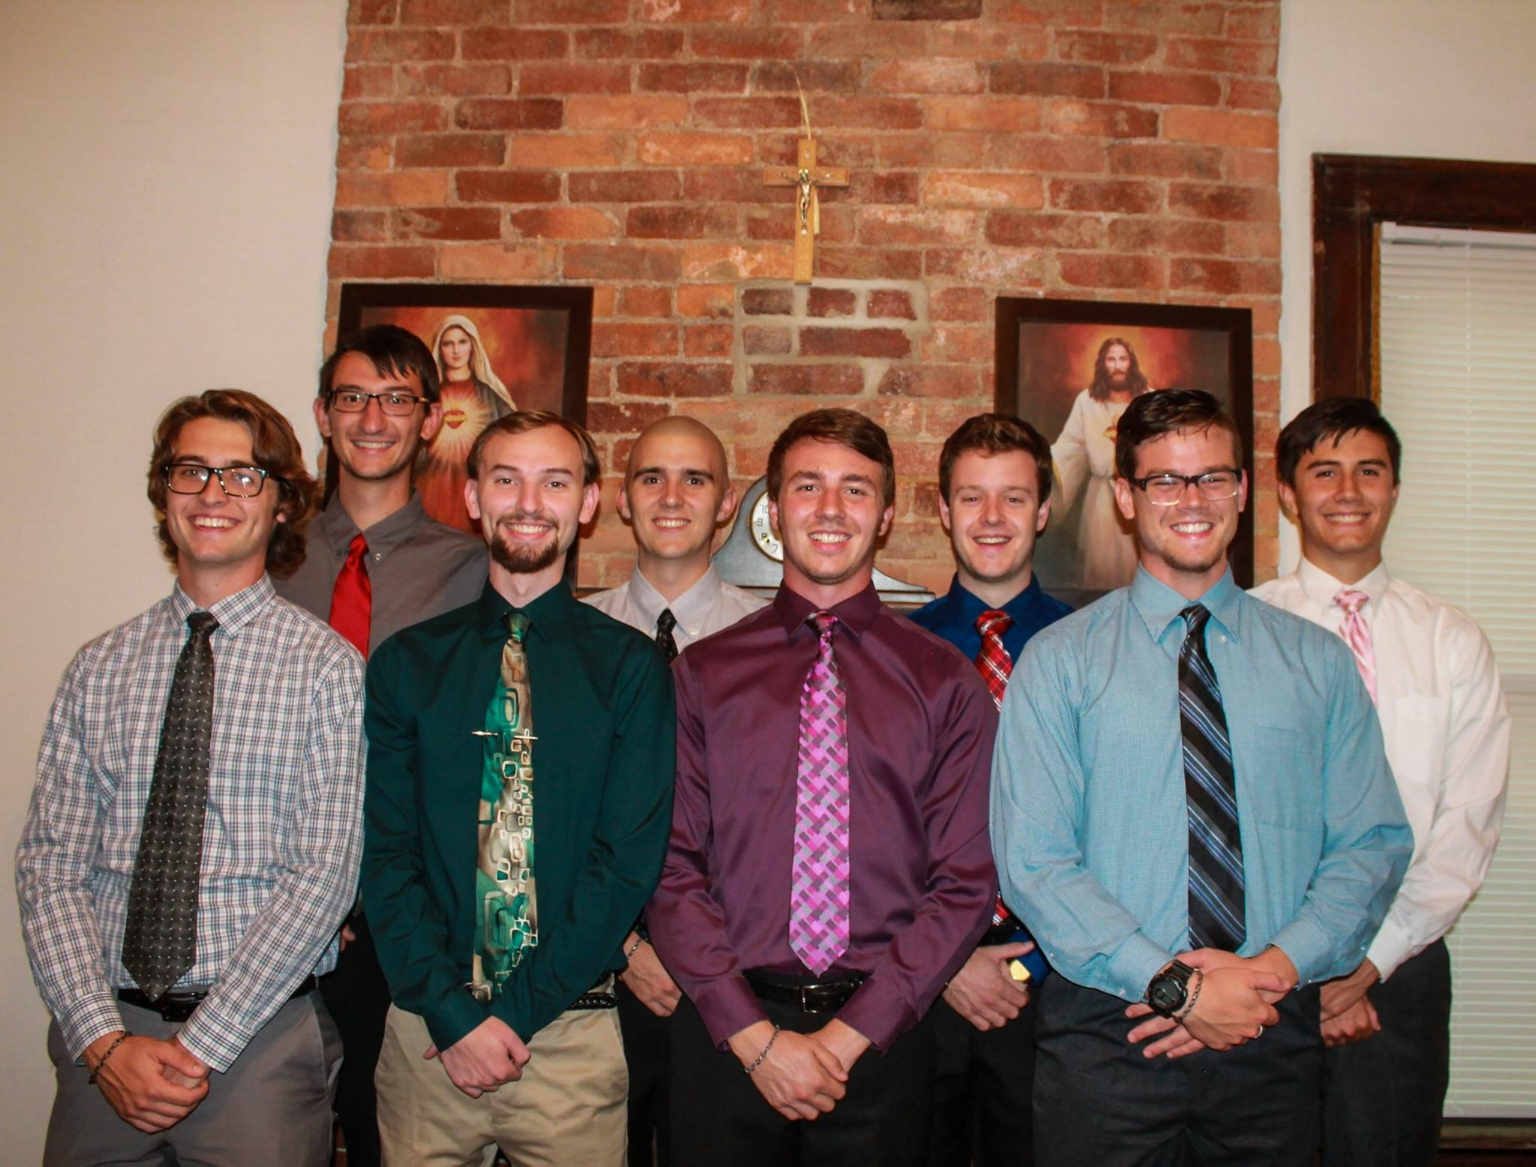 Jacob Ritchey (first row, far left) is living in his first year of Household at Malta, one of SPO Ohio's 3 men's houses.